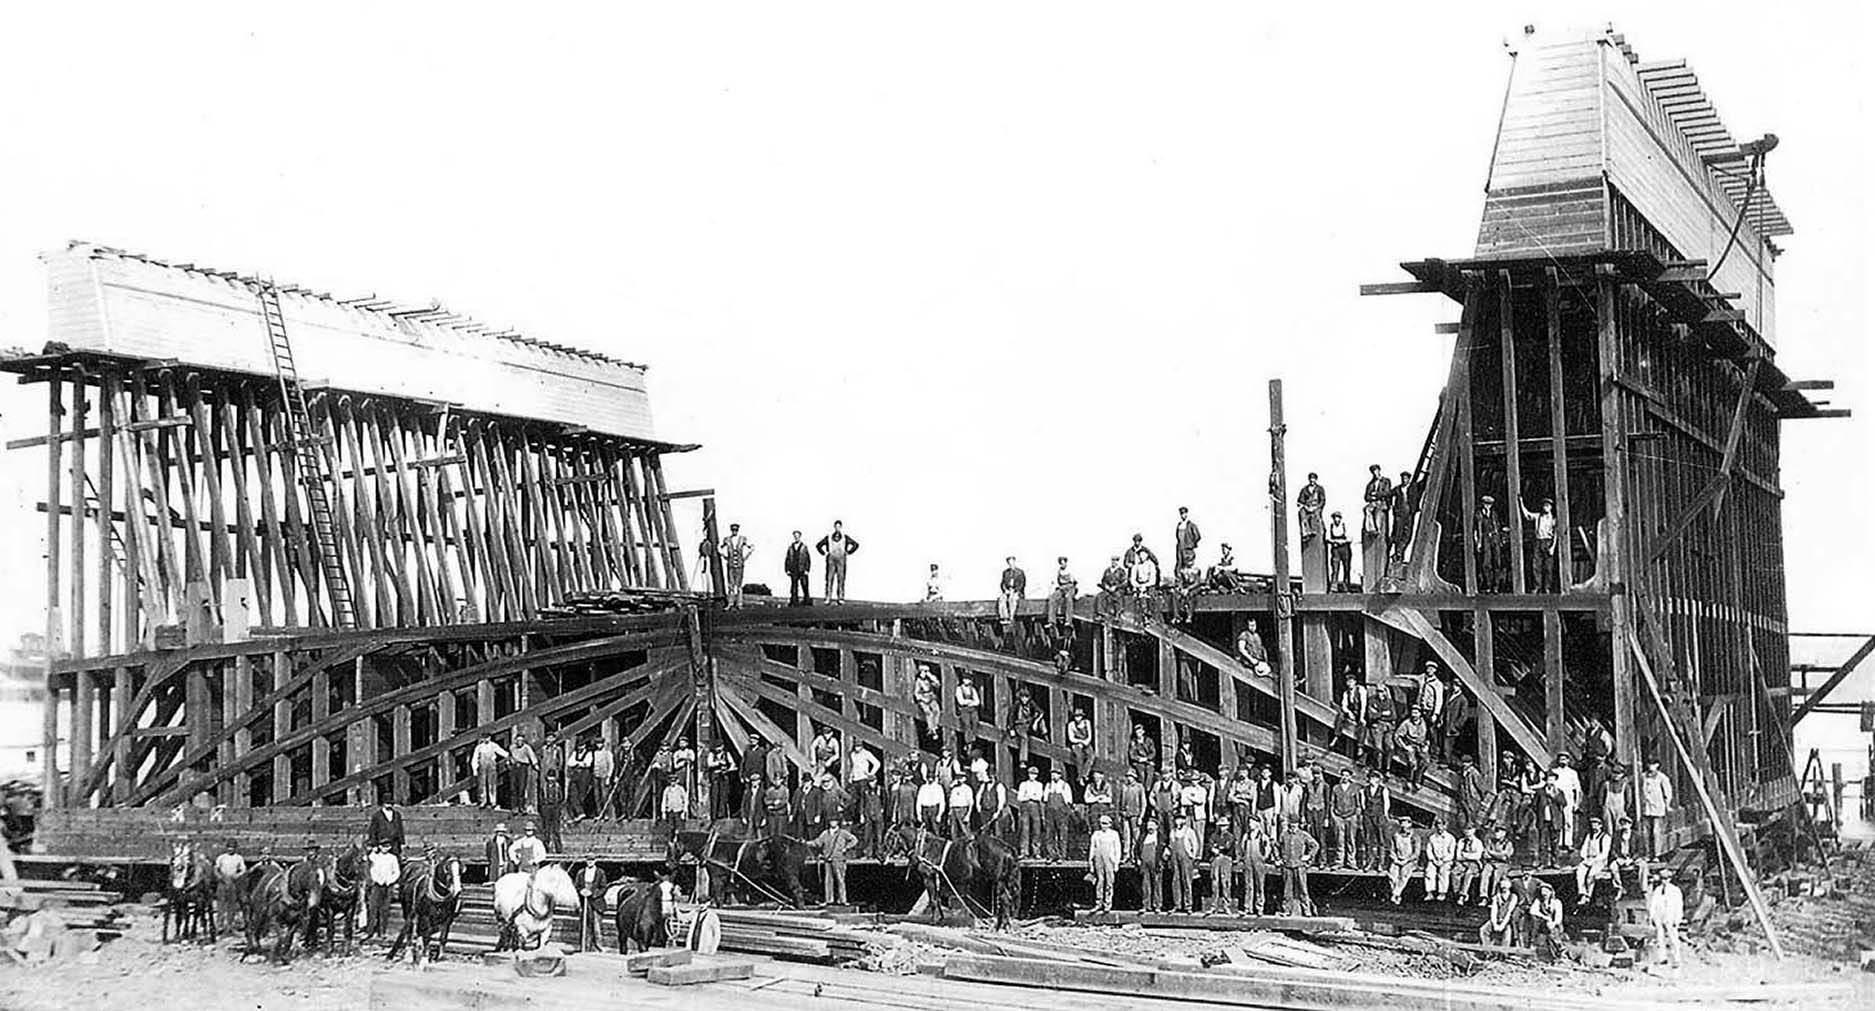 Tottenville's Cossey's dockyard employed 300 people in the early 1900s.